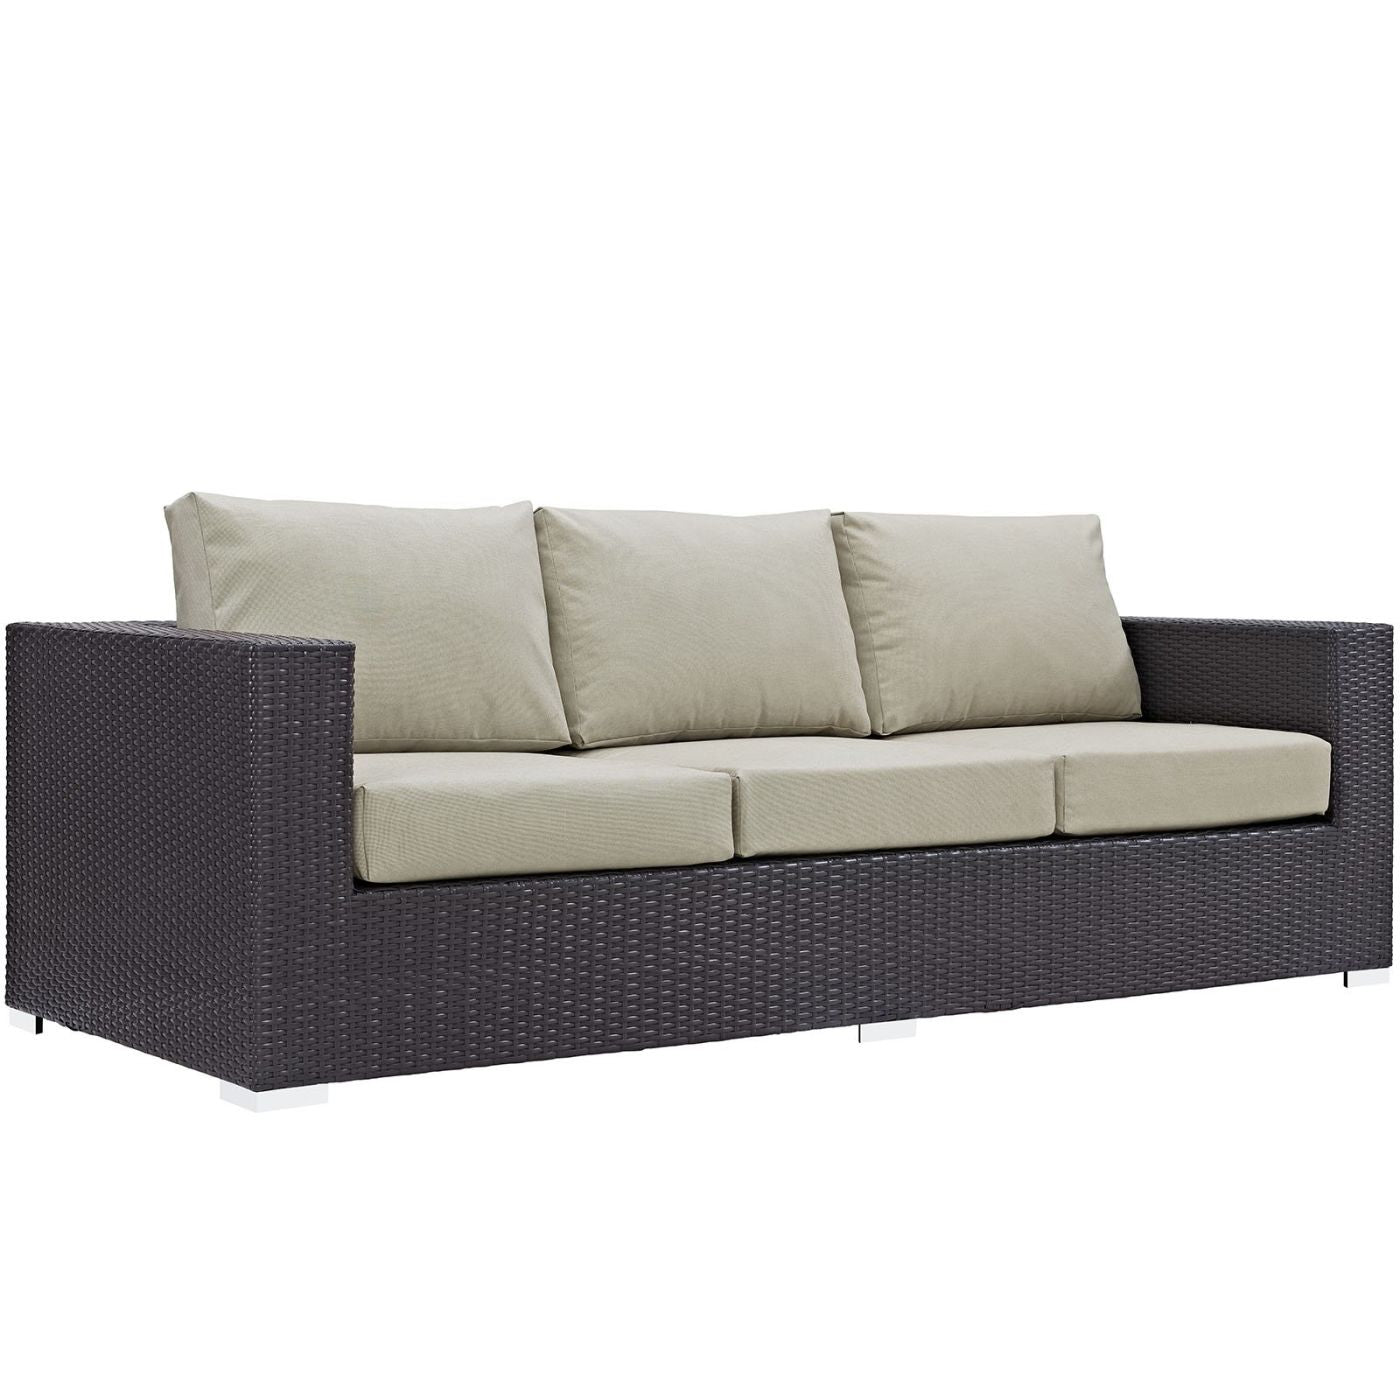 Convene Rattan Outdoor Patio Sofa